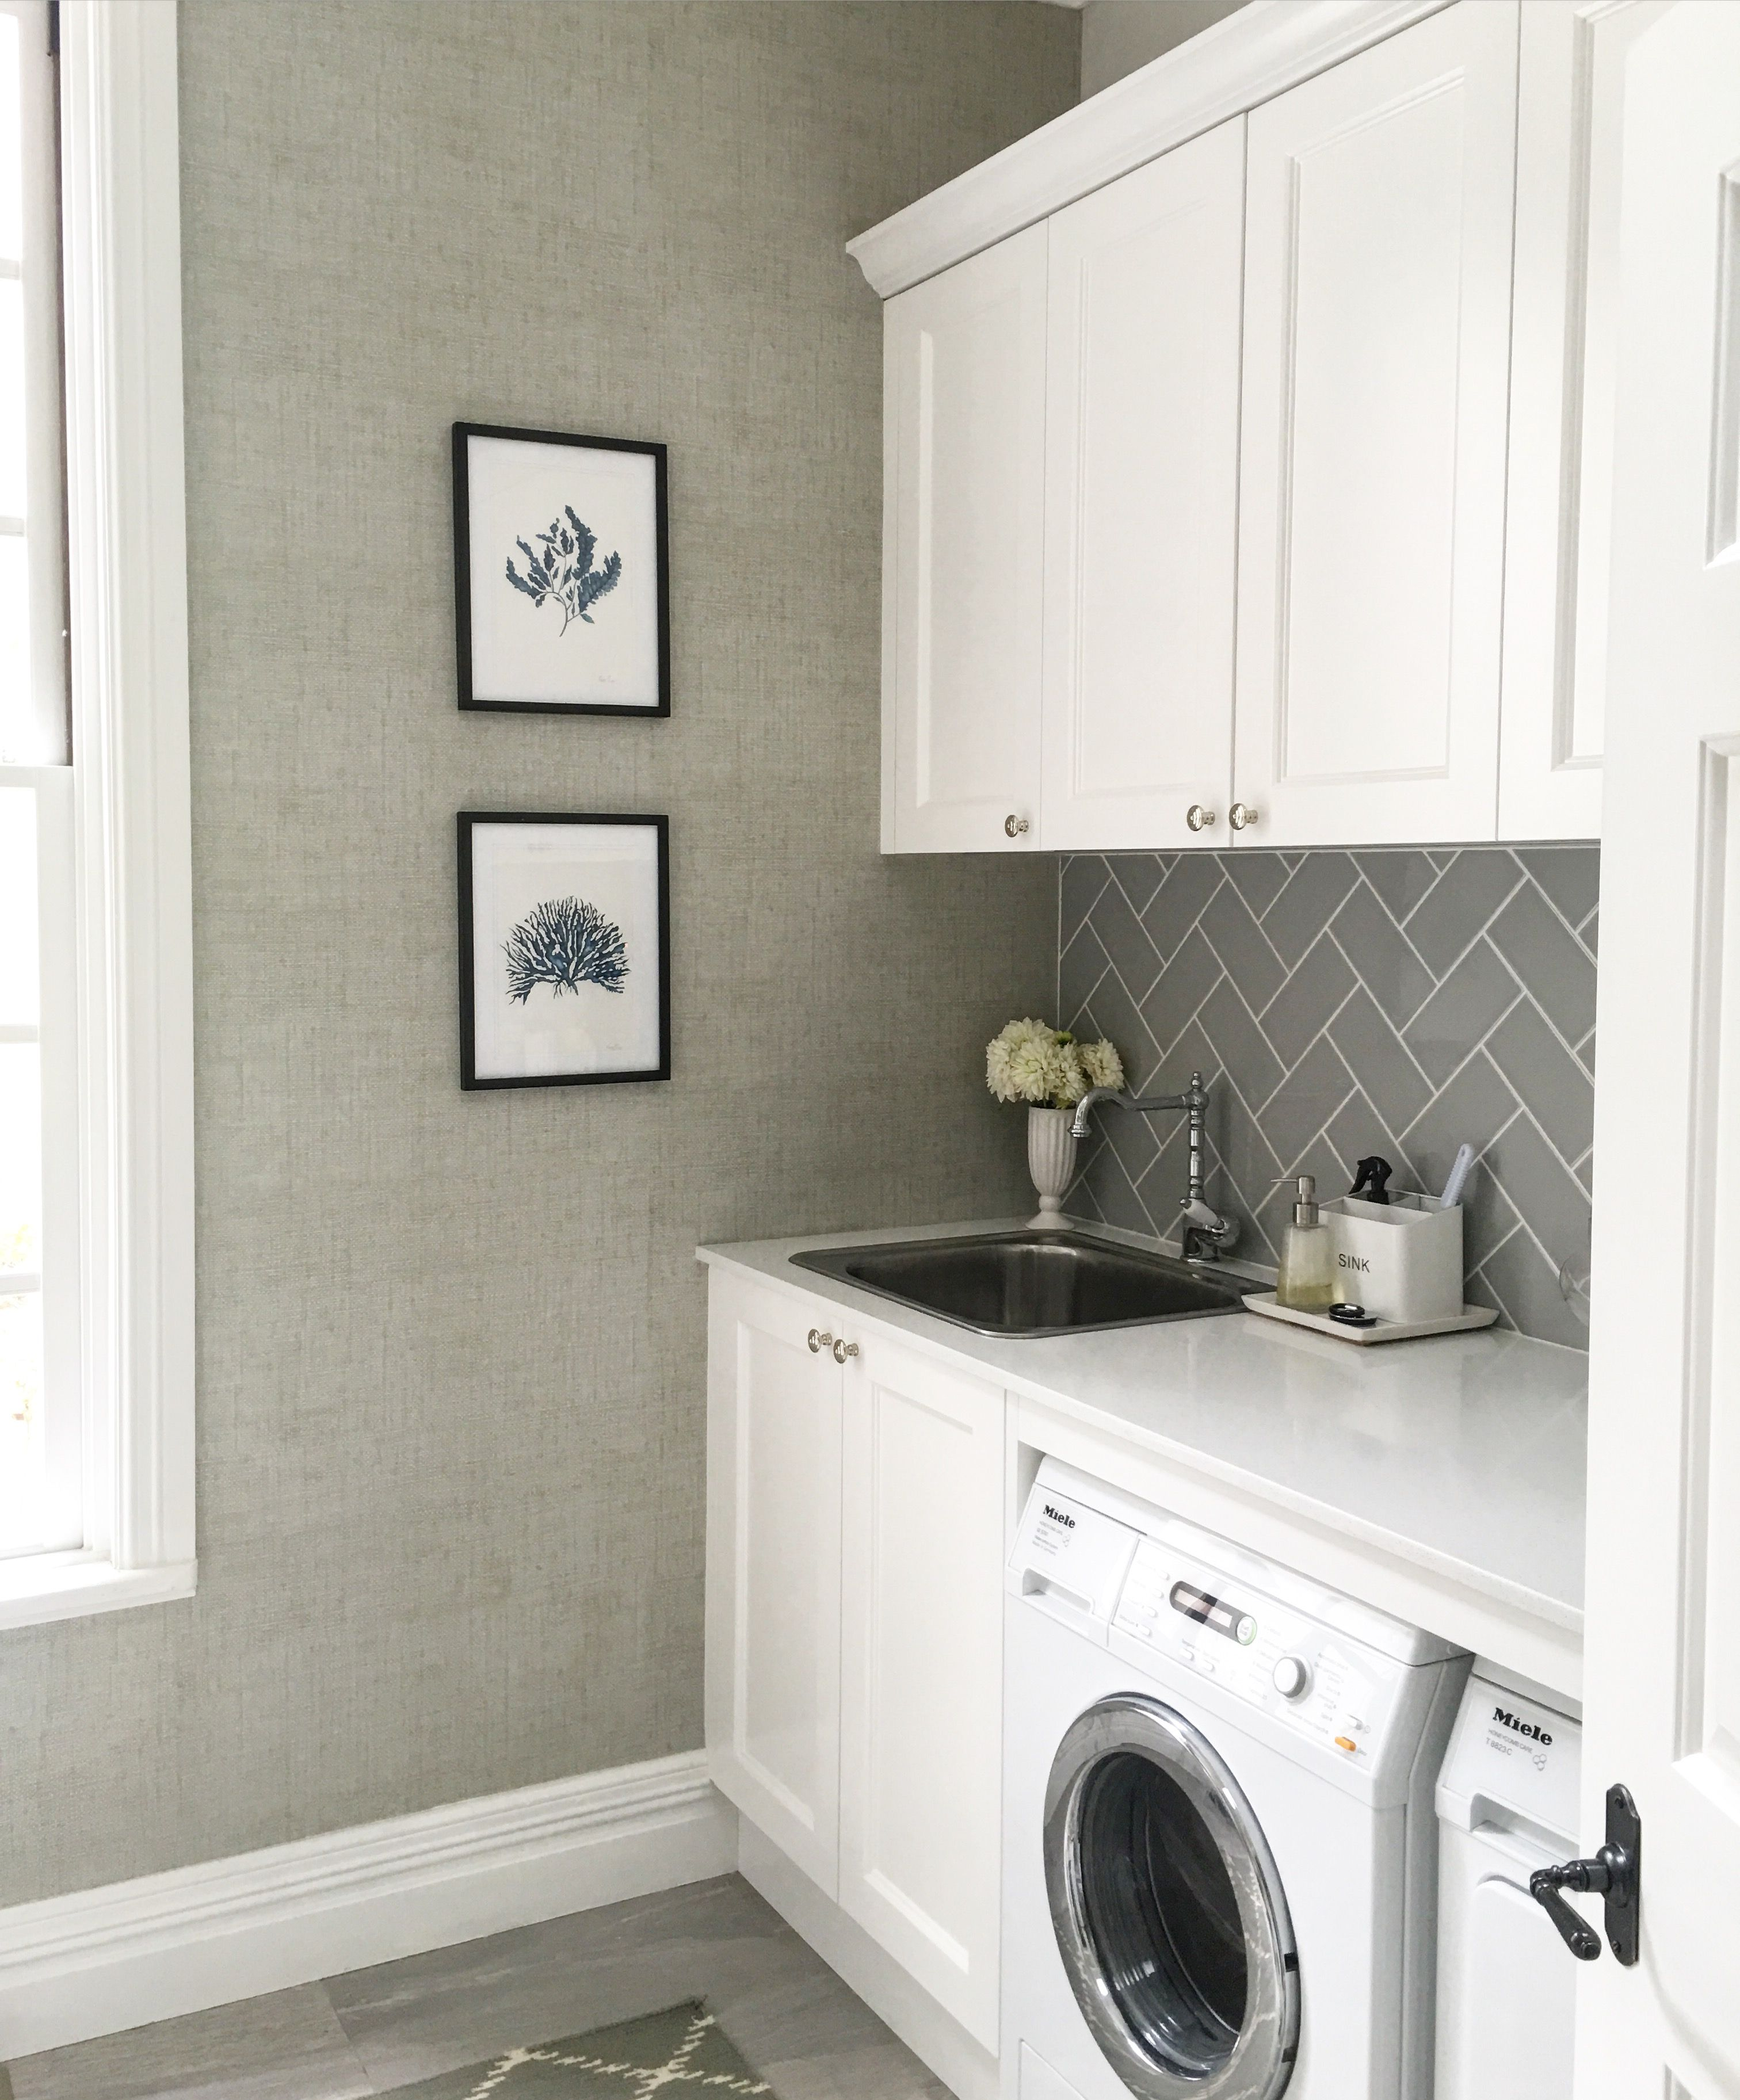 Laundry thibaut raffia wallpaper grey subway tiles grey stone laundry thibaut raffia wallpaper grey subway tiles grey stone floor tiles caesarstone dailygadgetfo Choice Image